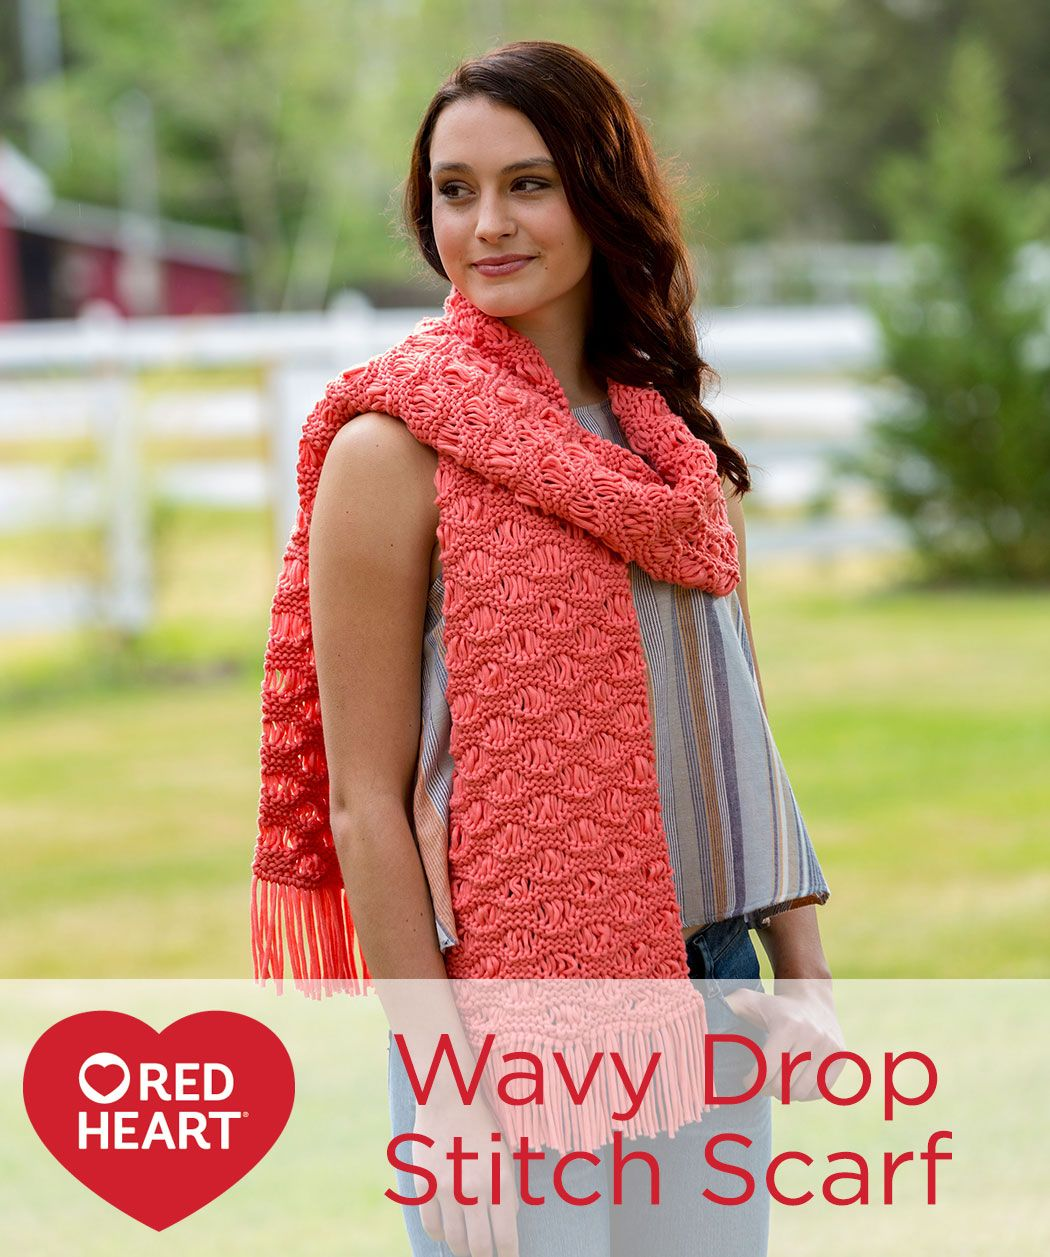 Wavy drop stitch scarf free knitting pattern in red heart yarn wavy drop stitch scarf free knitting pattern in red heart yarn using this bankloansurffo Images